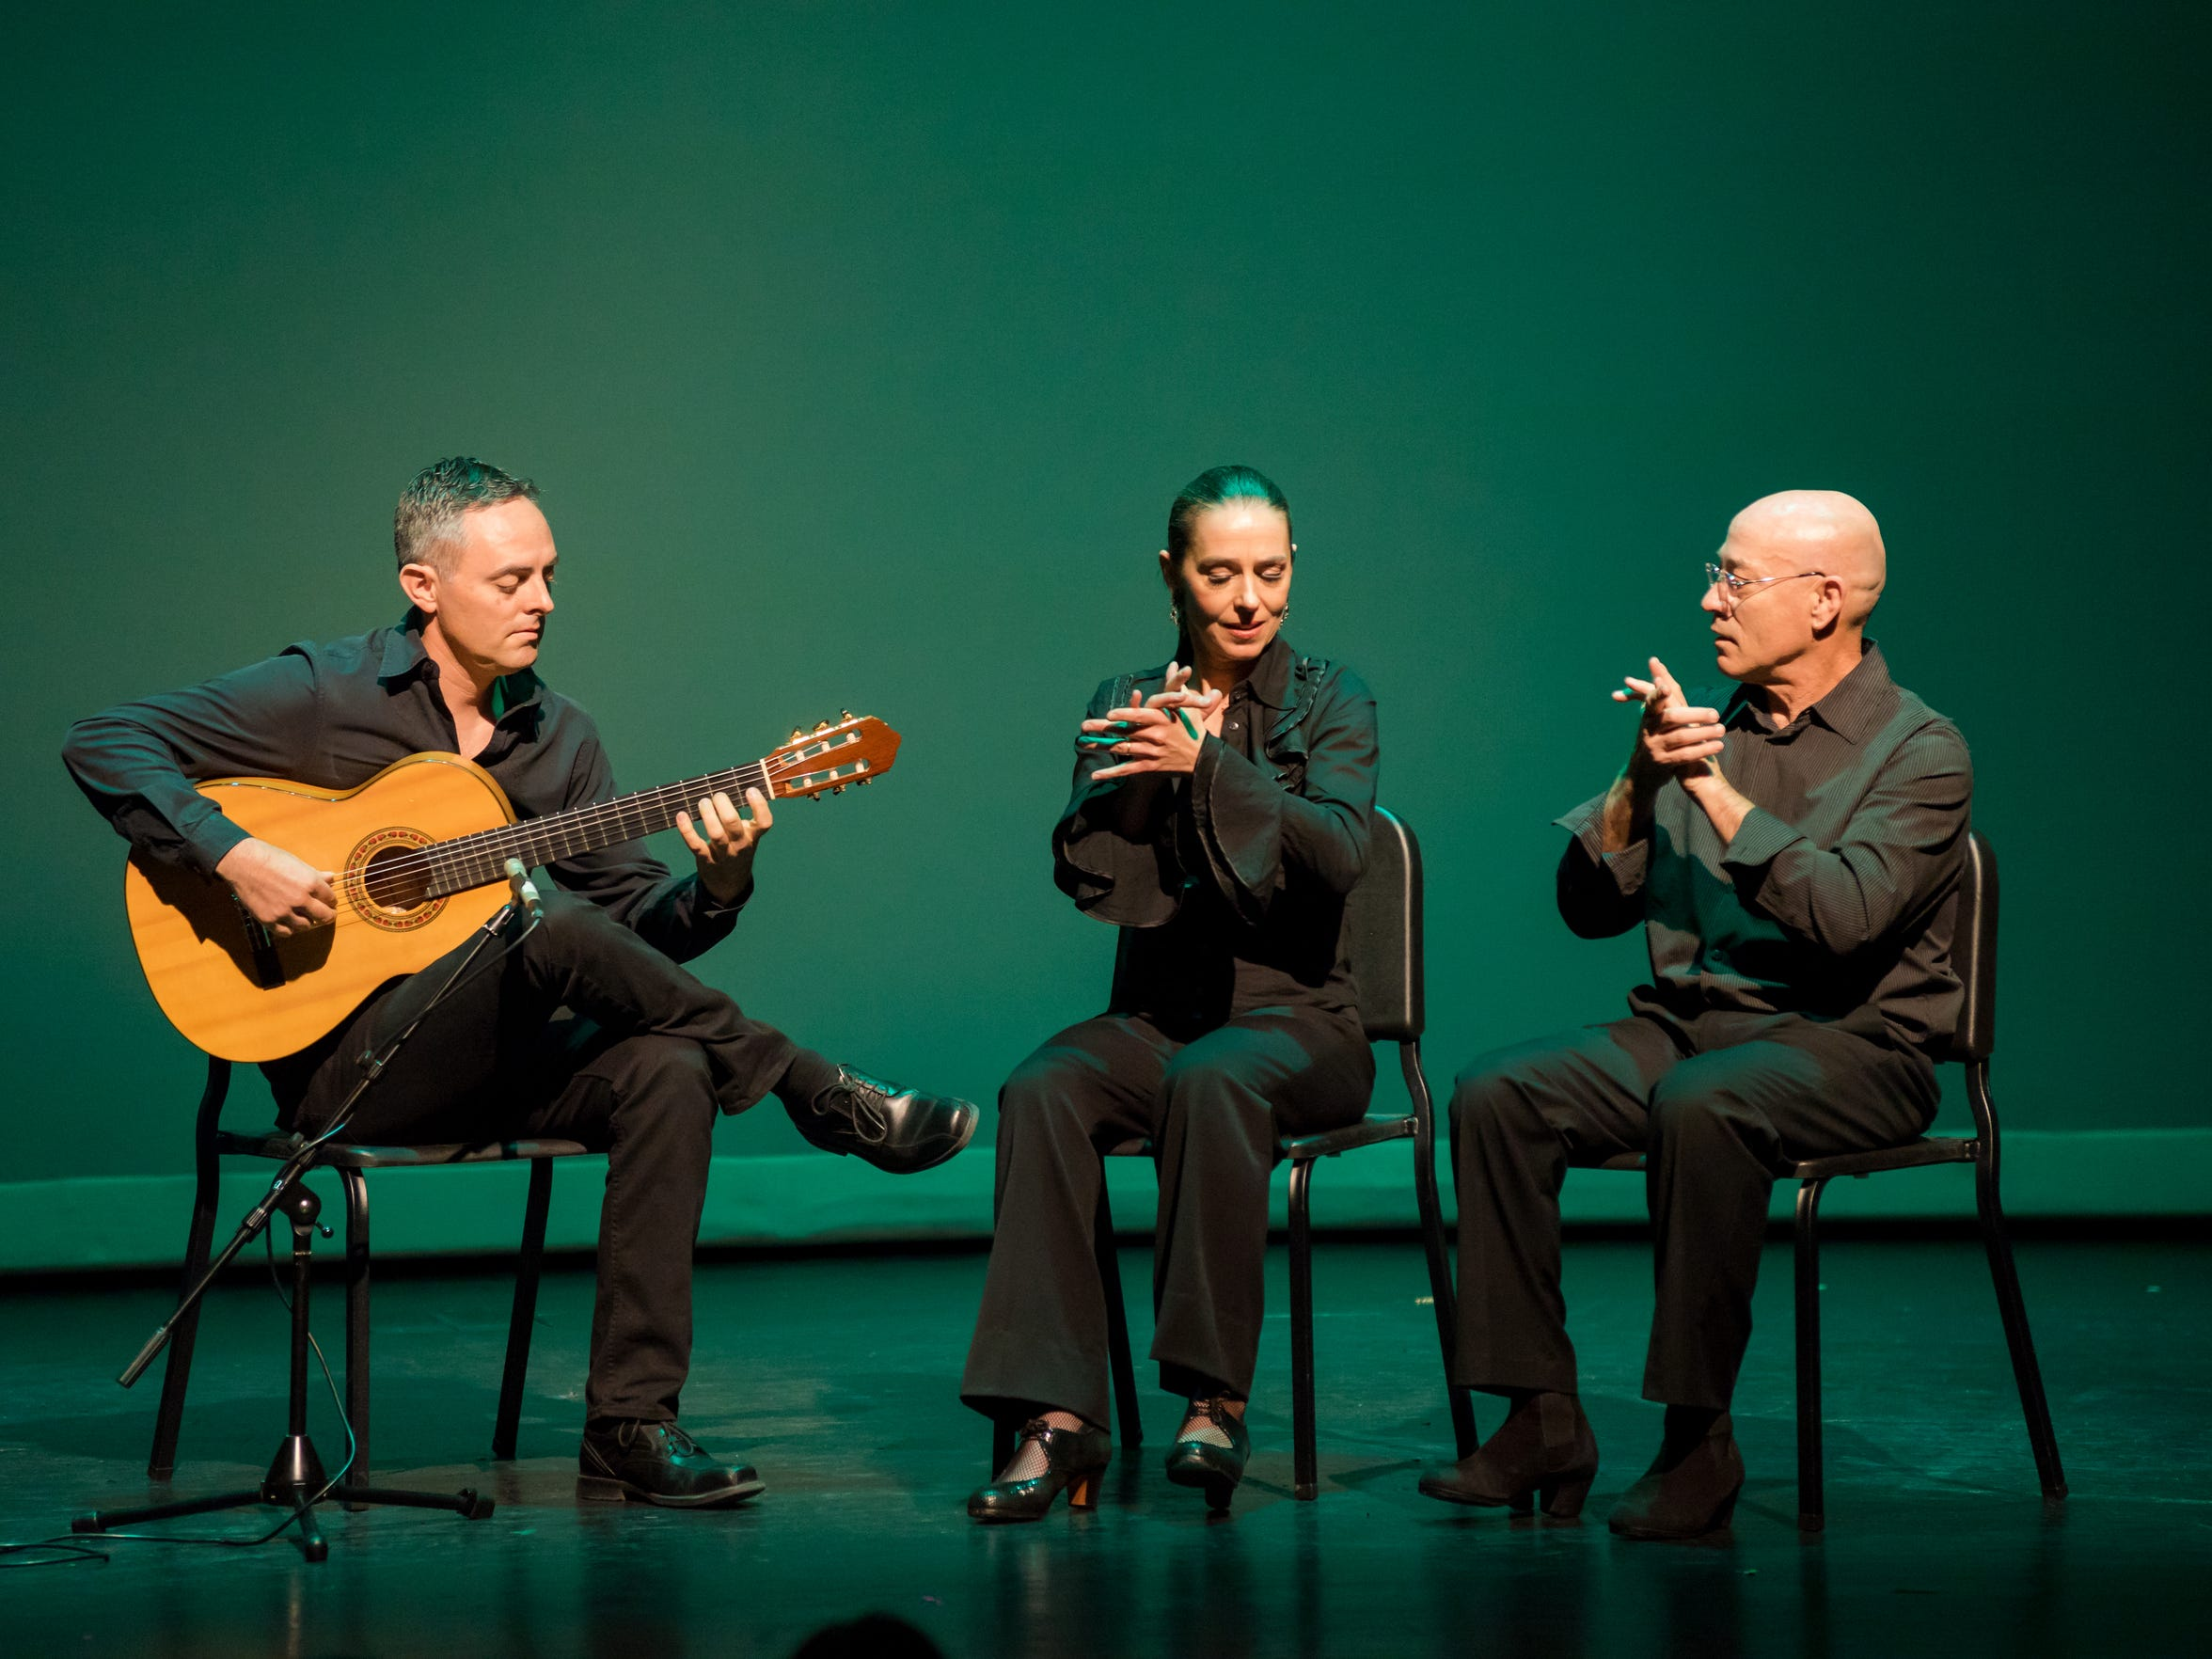 From left to right, guitarist Jake Mossman and rhythmic accompanists Lucilene de Geus and Paco Antonio. The three will perform with flamenco dancer La Emi and singer Vicente Griego on Friday, as part of Flamenco Fridays.